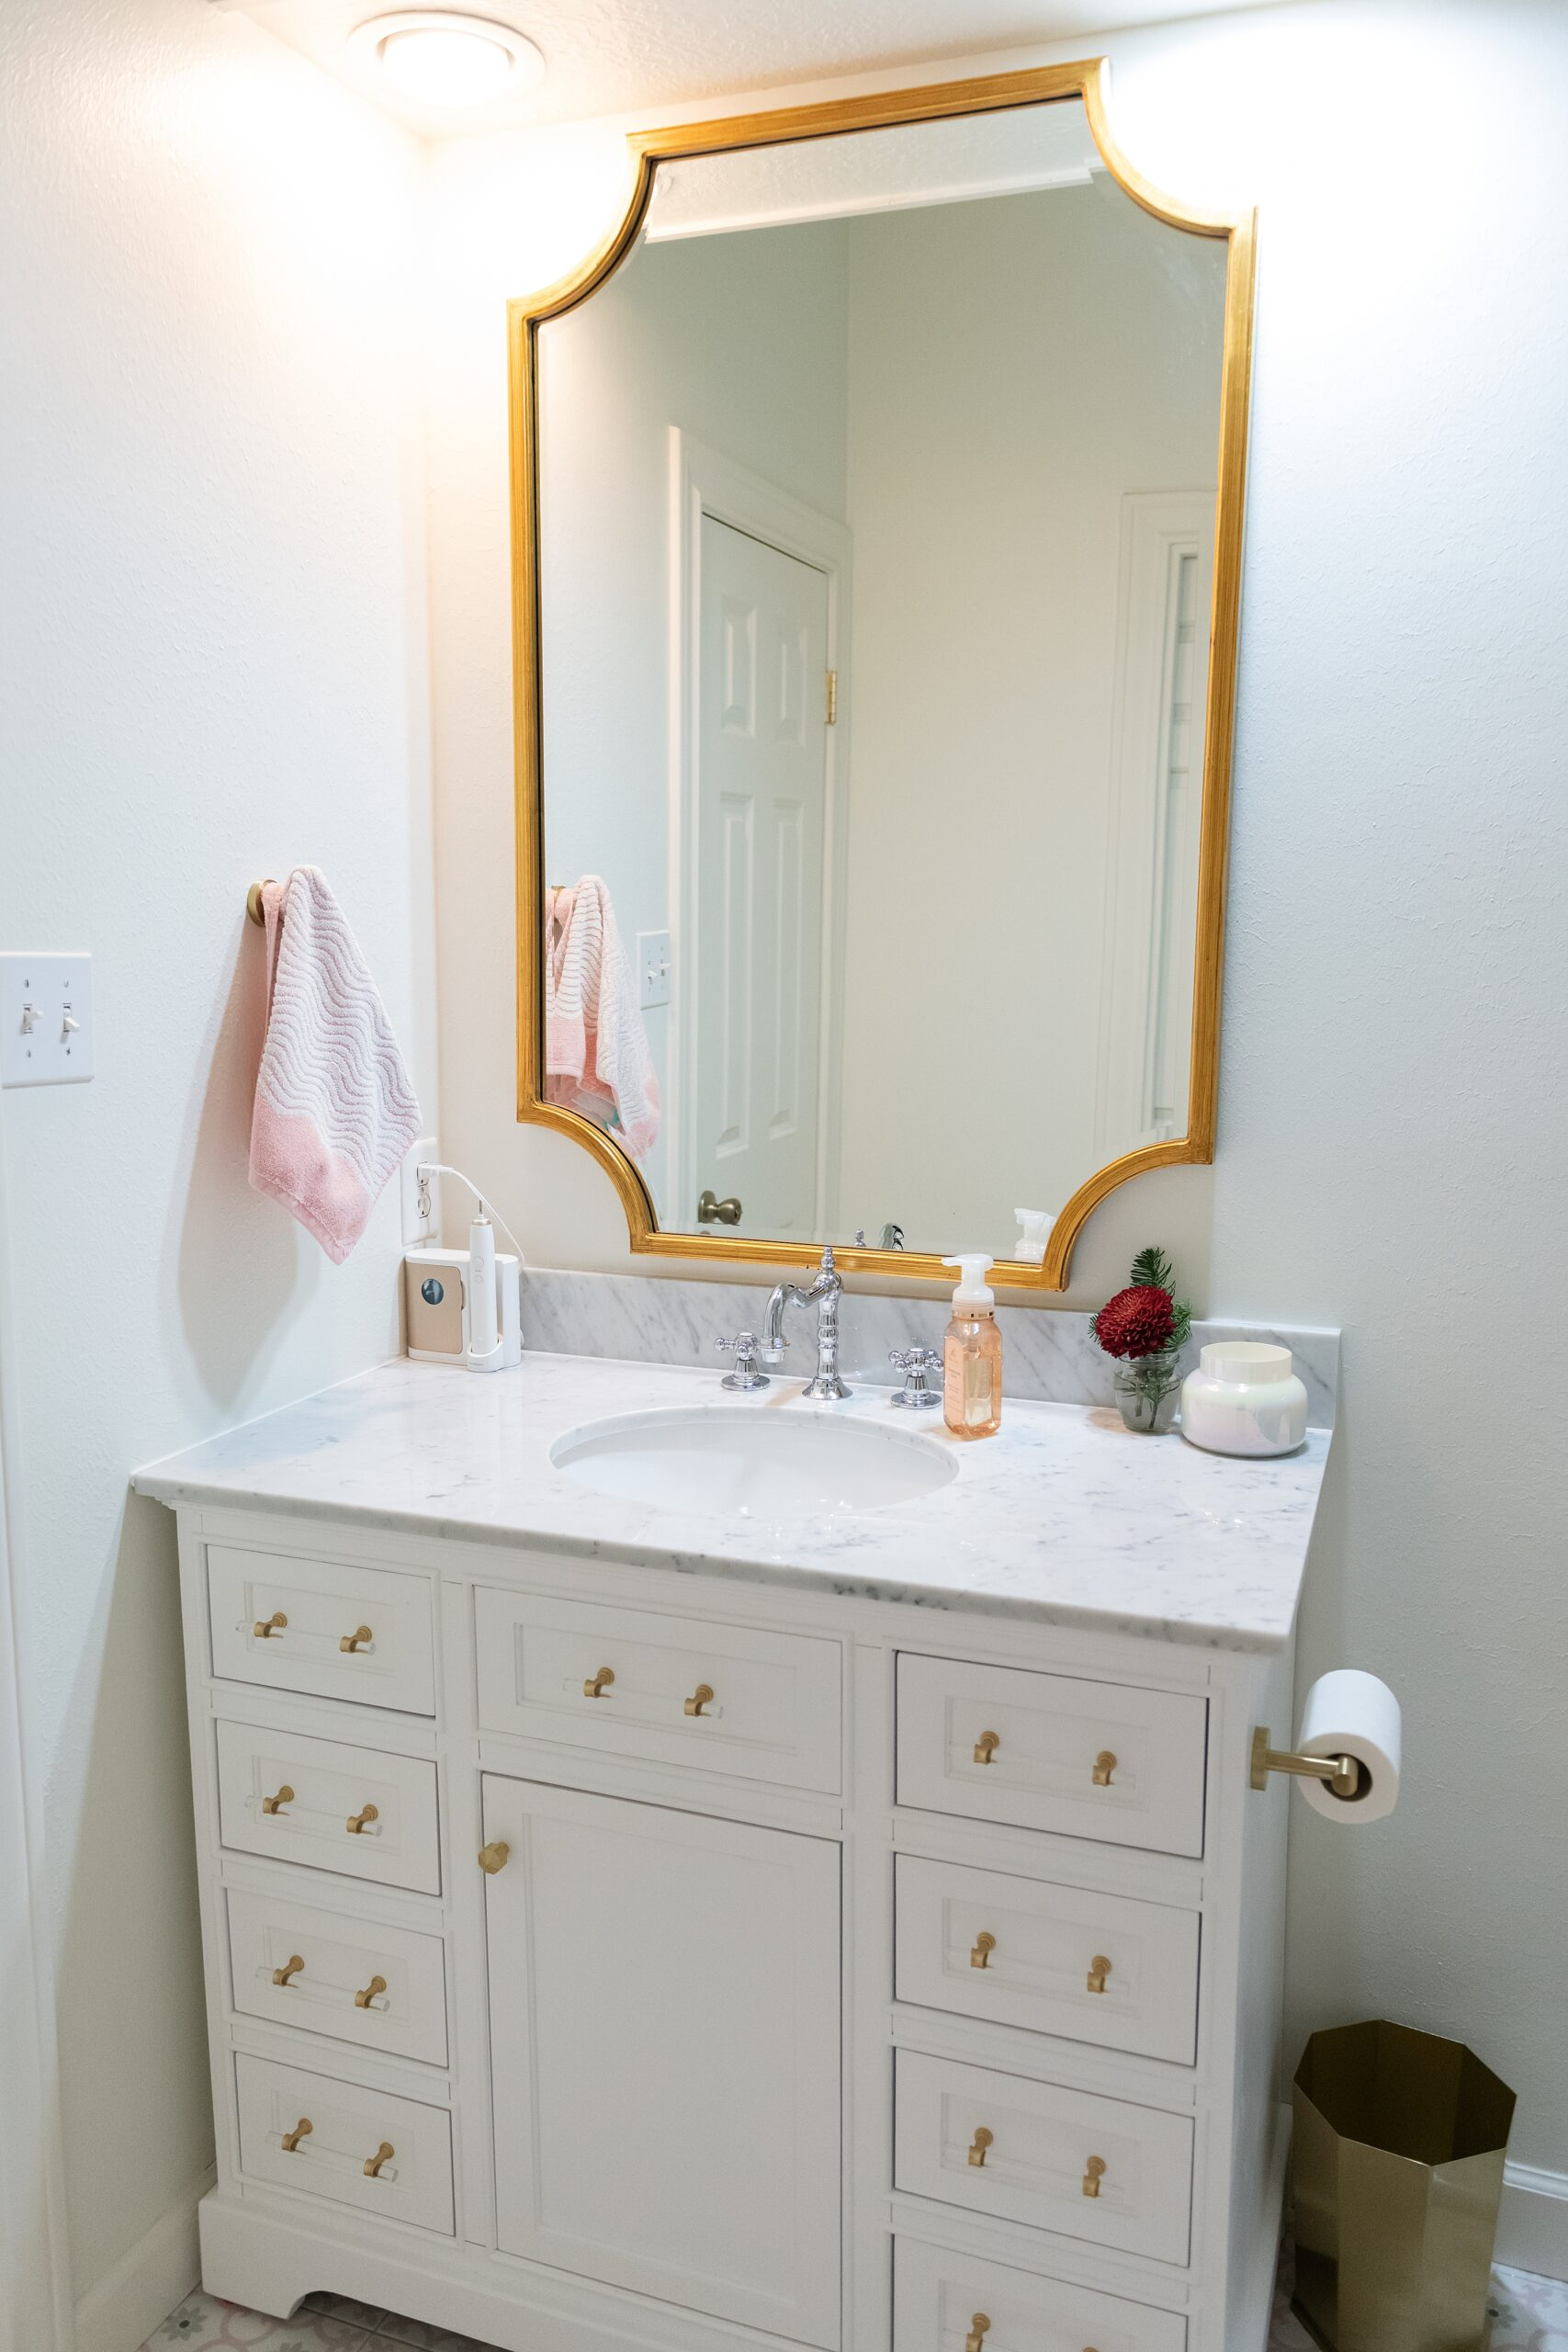 Girls Bathroom by popular Houston life and style blog, Fancy Ashley: image of a bathroom with pink and grey tile, white vanity with marble counter top and gold drawer pulls, and gold frame mirror.